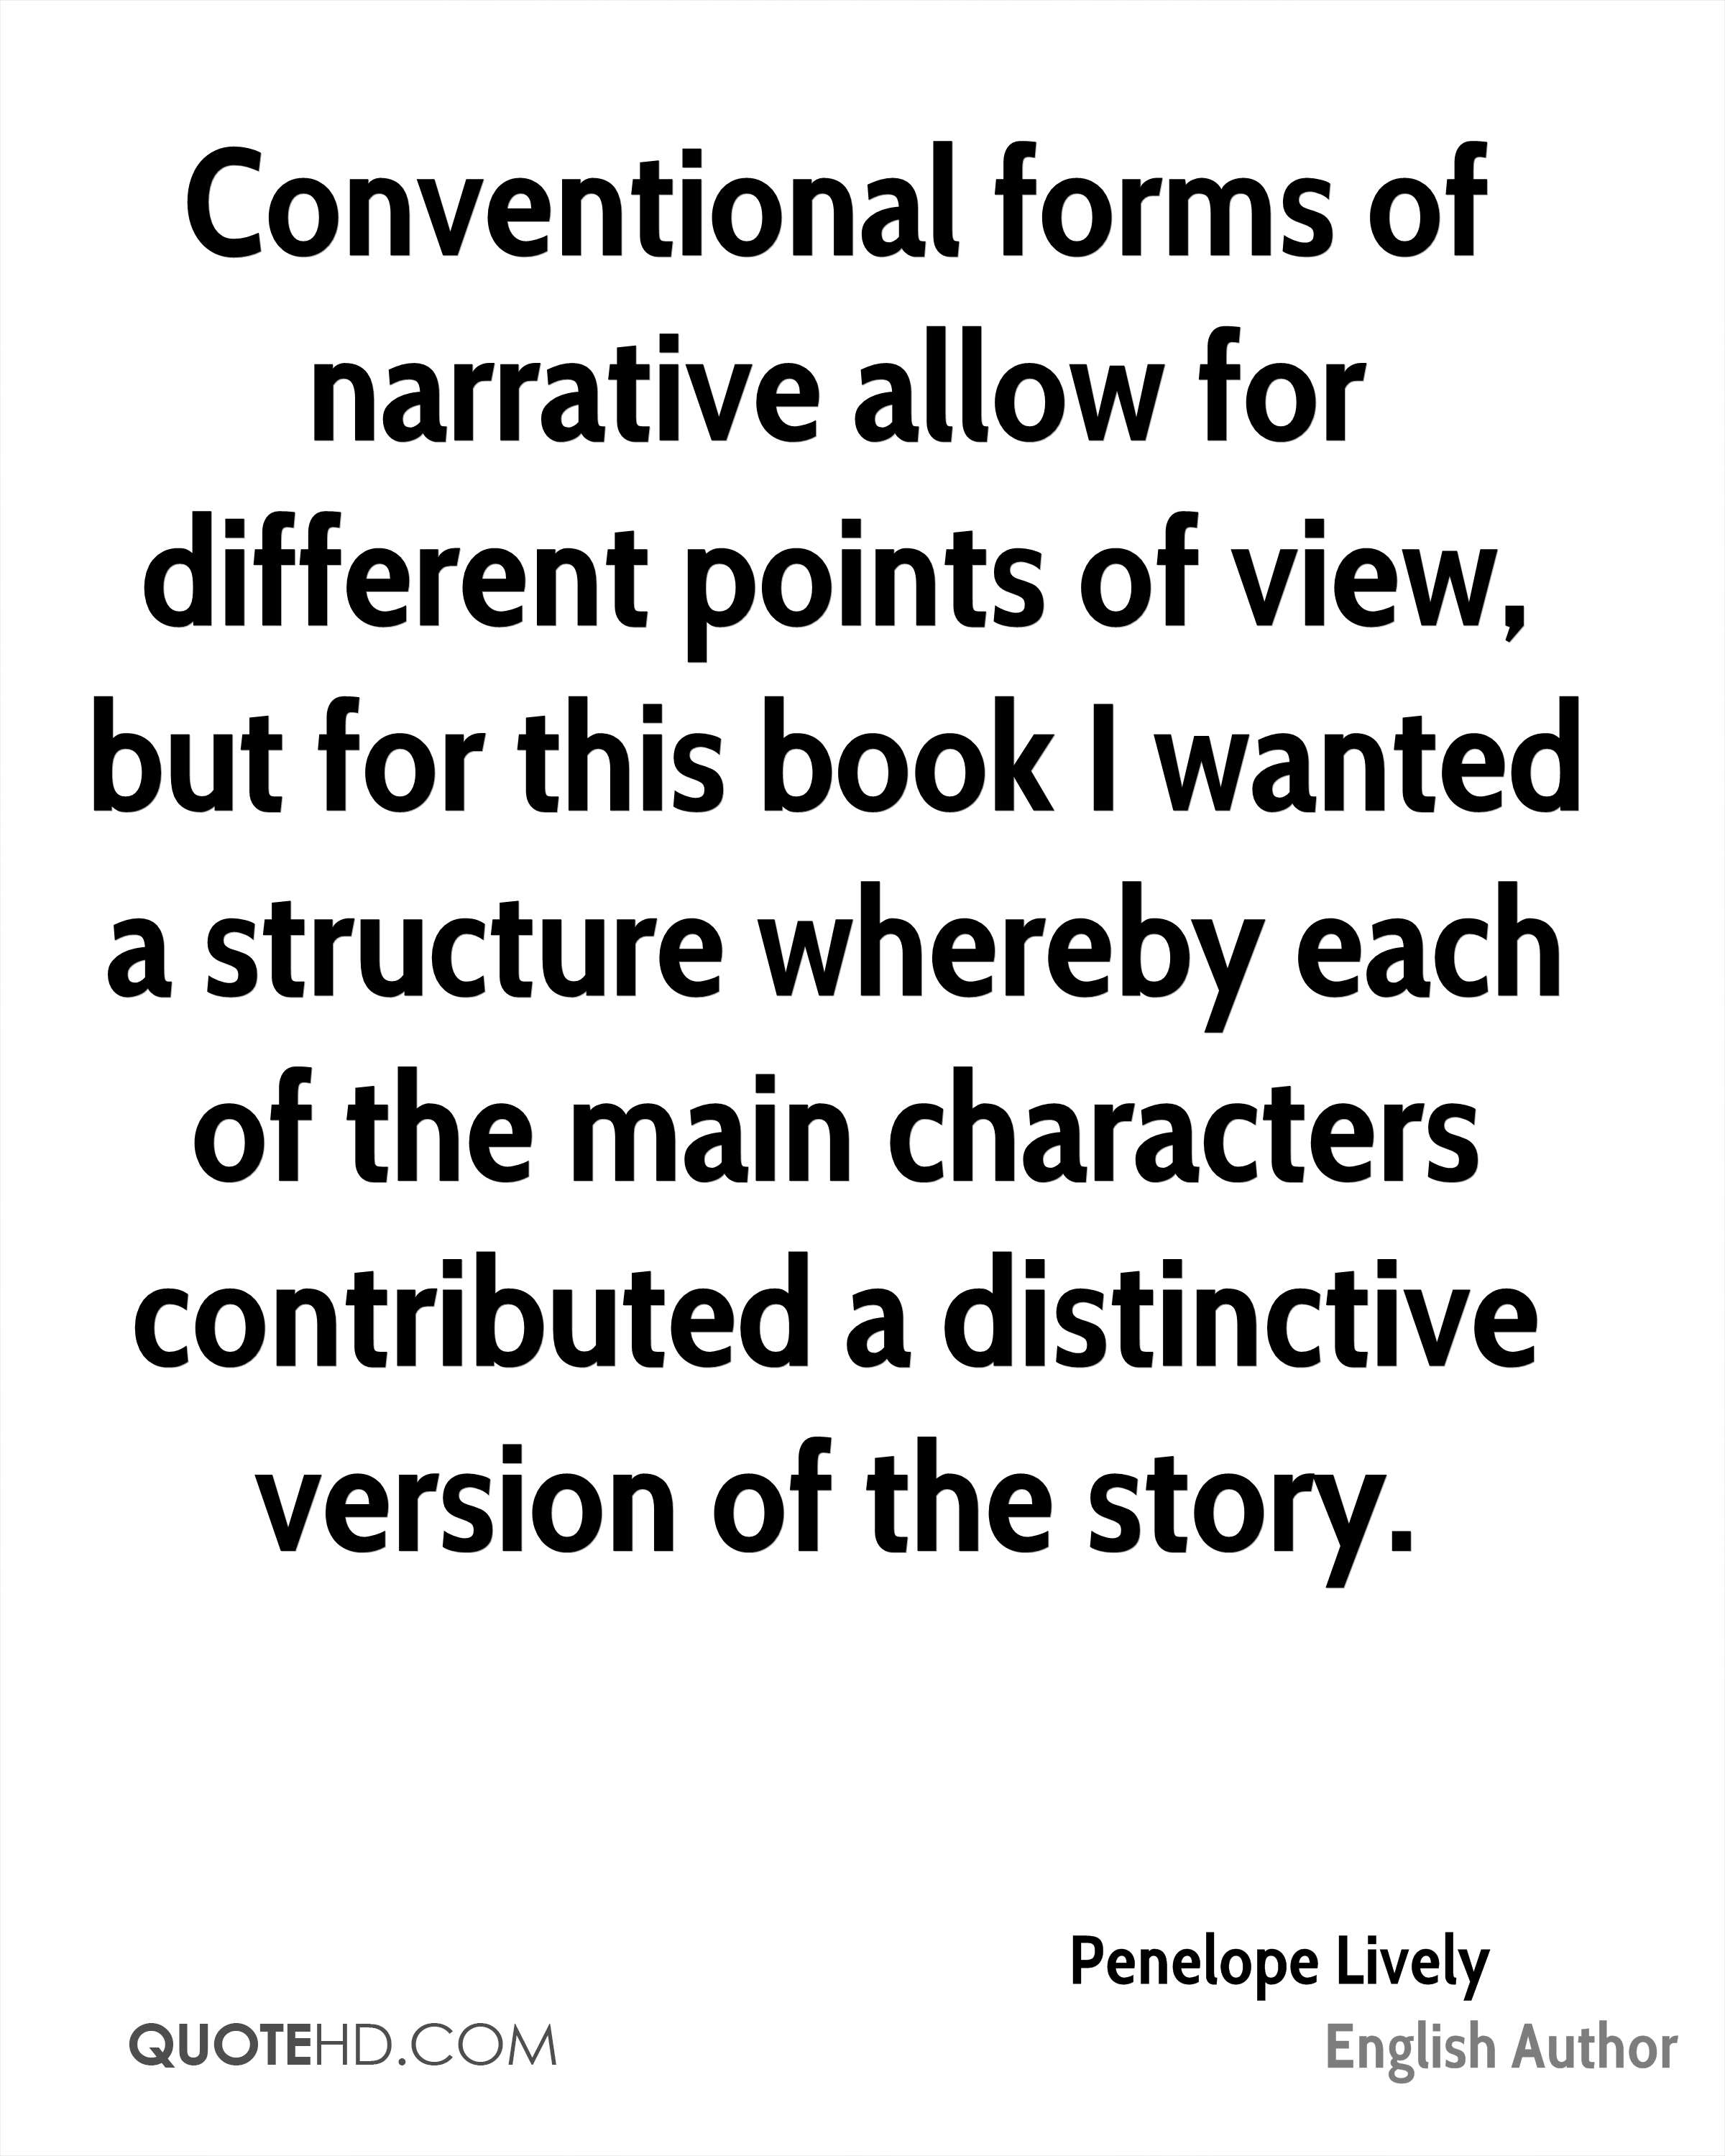 Conventional forms of narrative allow for different points of view, but for this book I wanted a structure whereby each of the main characters contributed a distinctive version of the story.